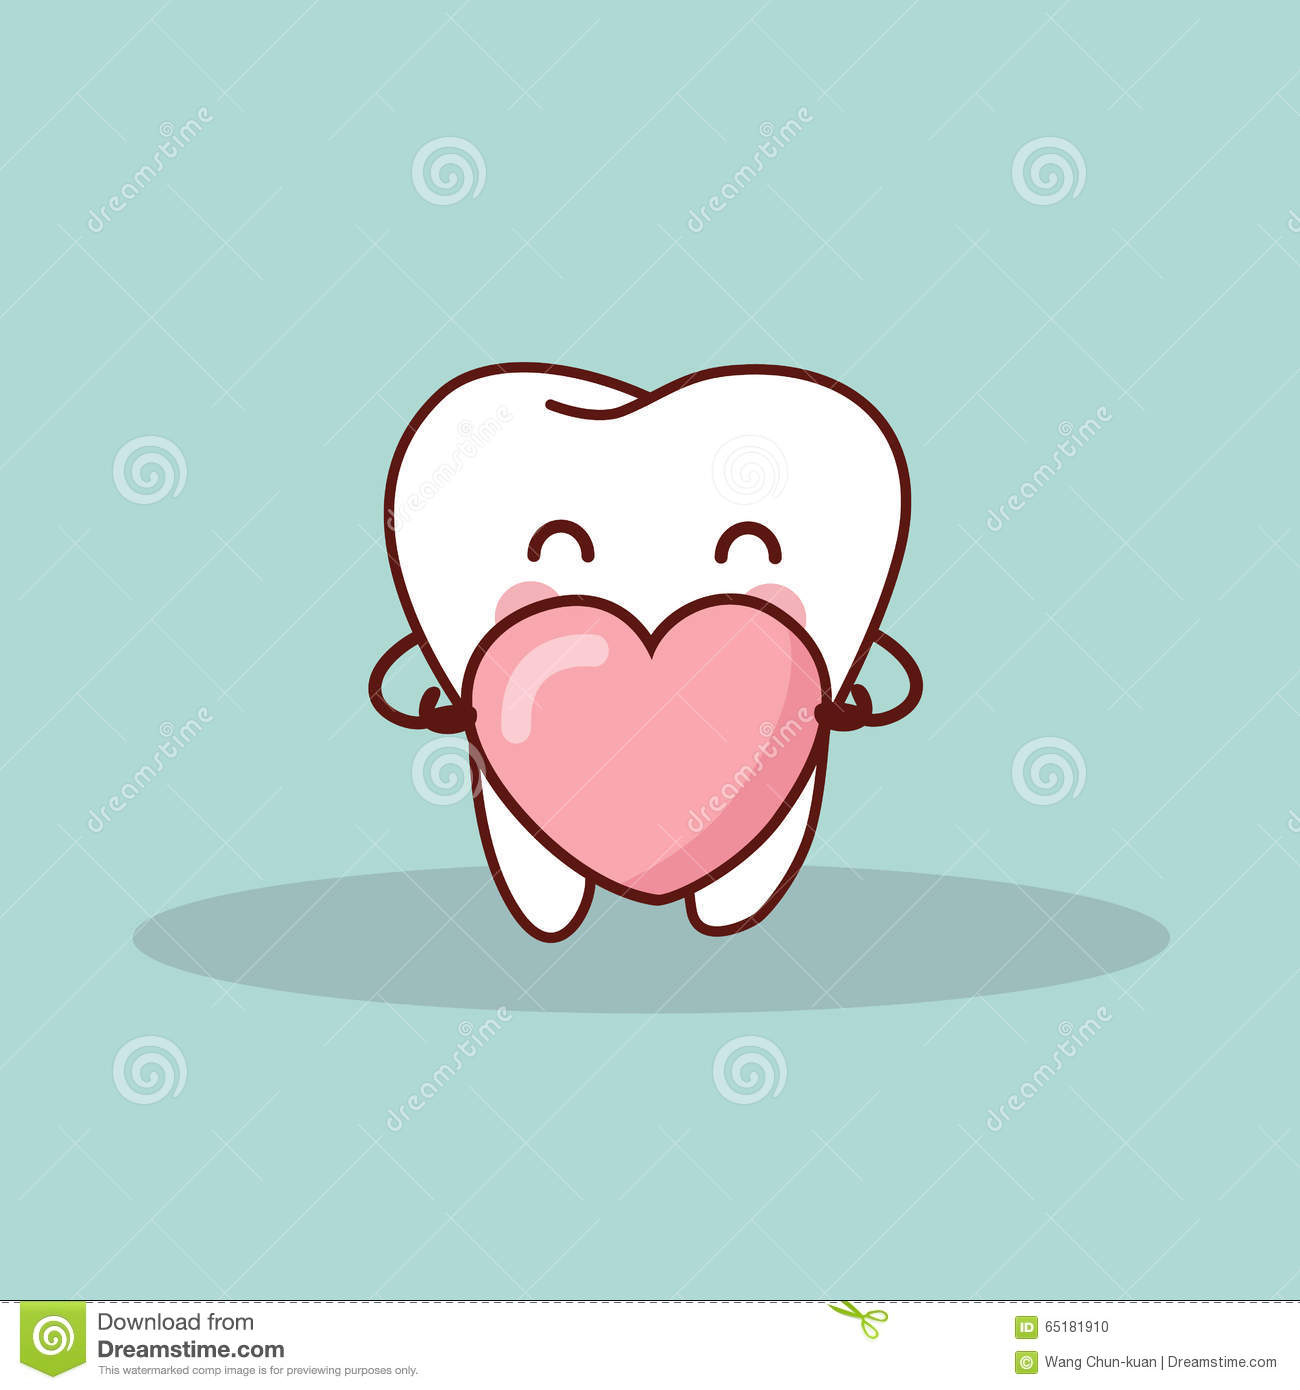 Cute Cartoon Tooth With Love Stock Vector - Image: 65181910